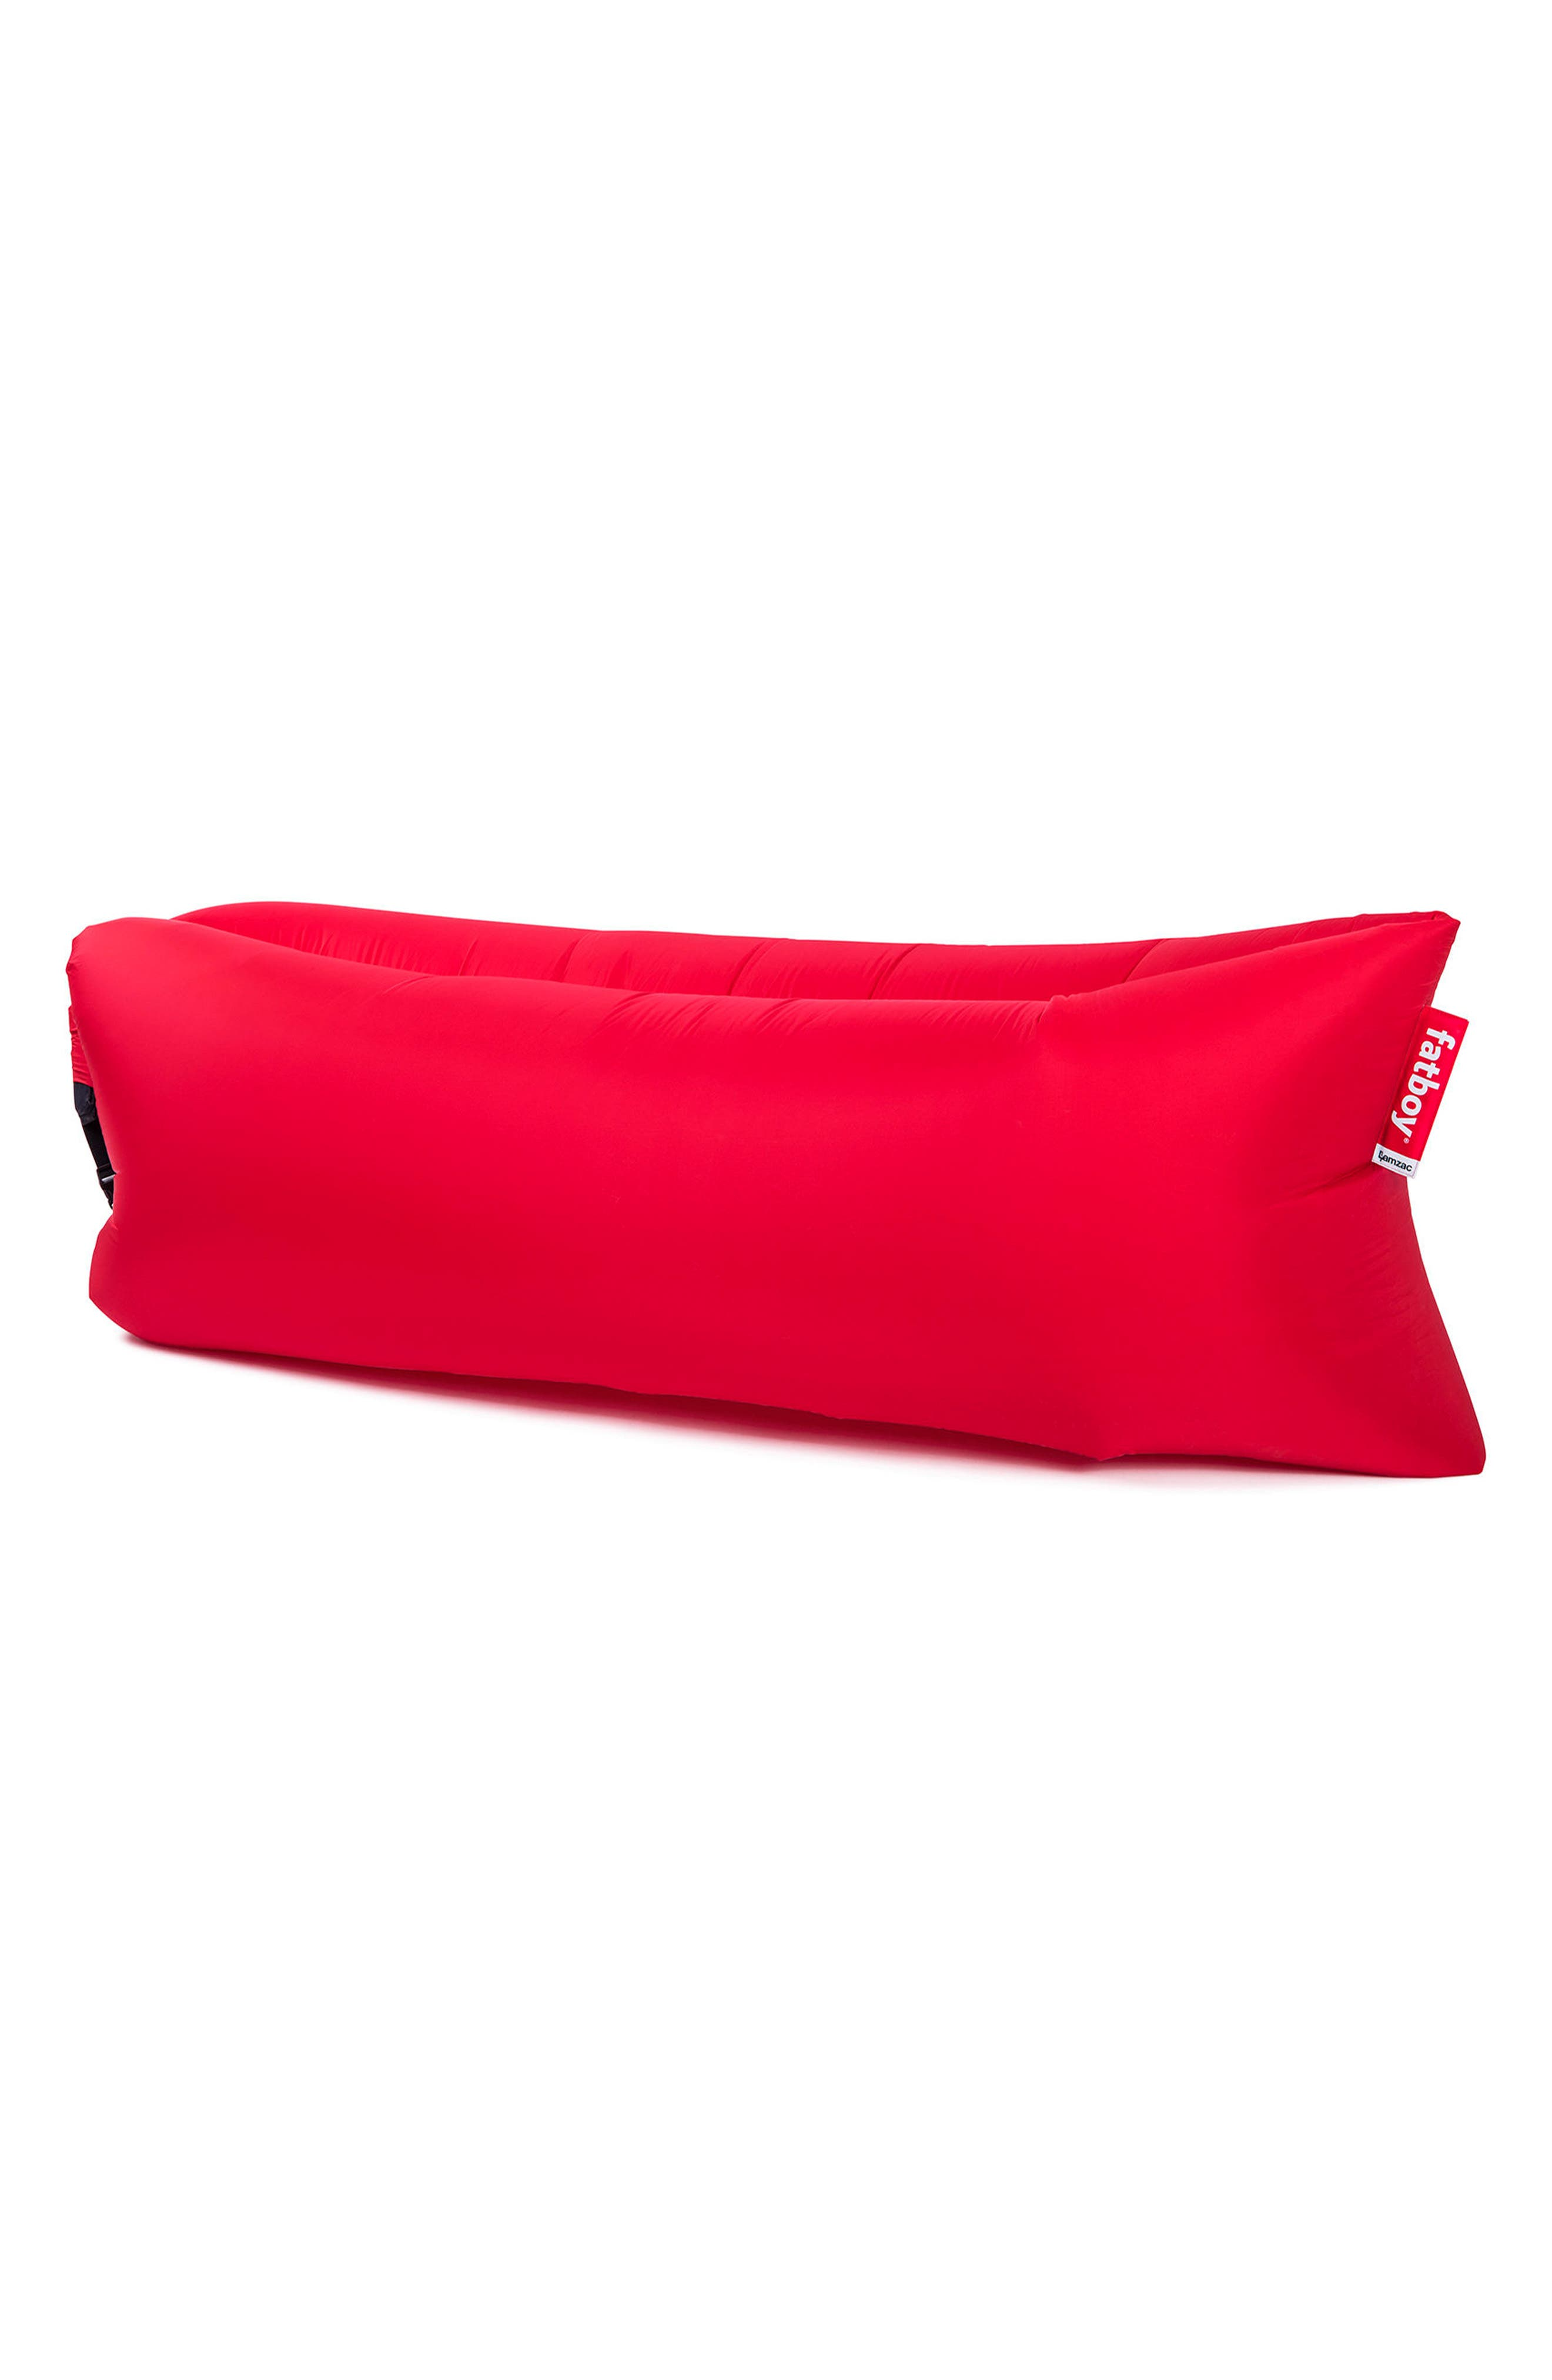 Lamzac<sup>®</sup> The Original Inflatable Lounger,                             Main thumbnail 1, color,                             Red 2